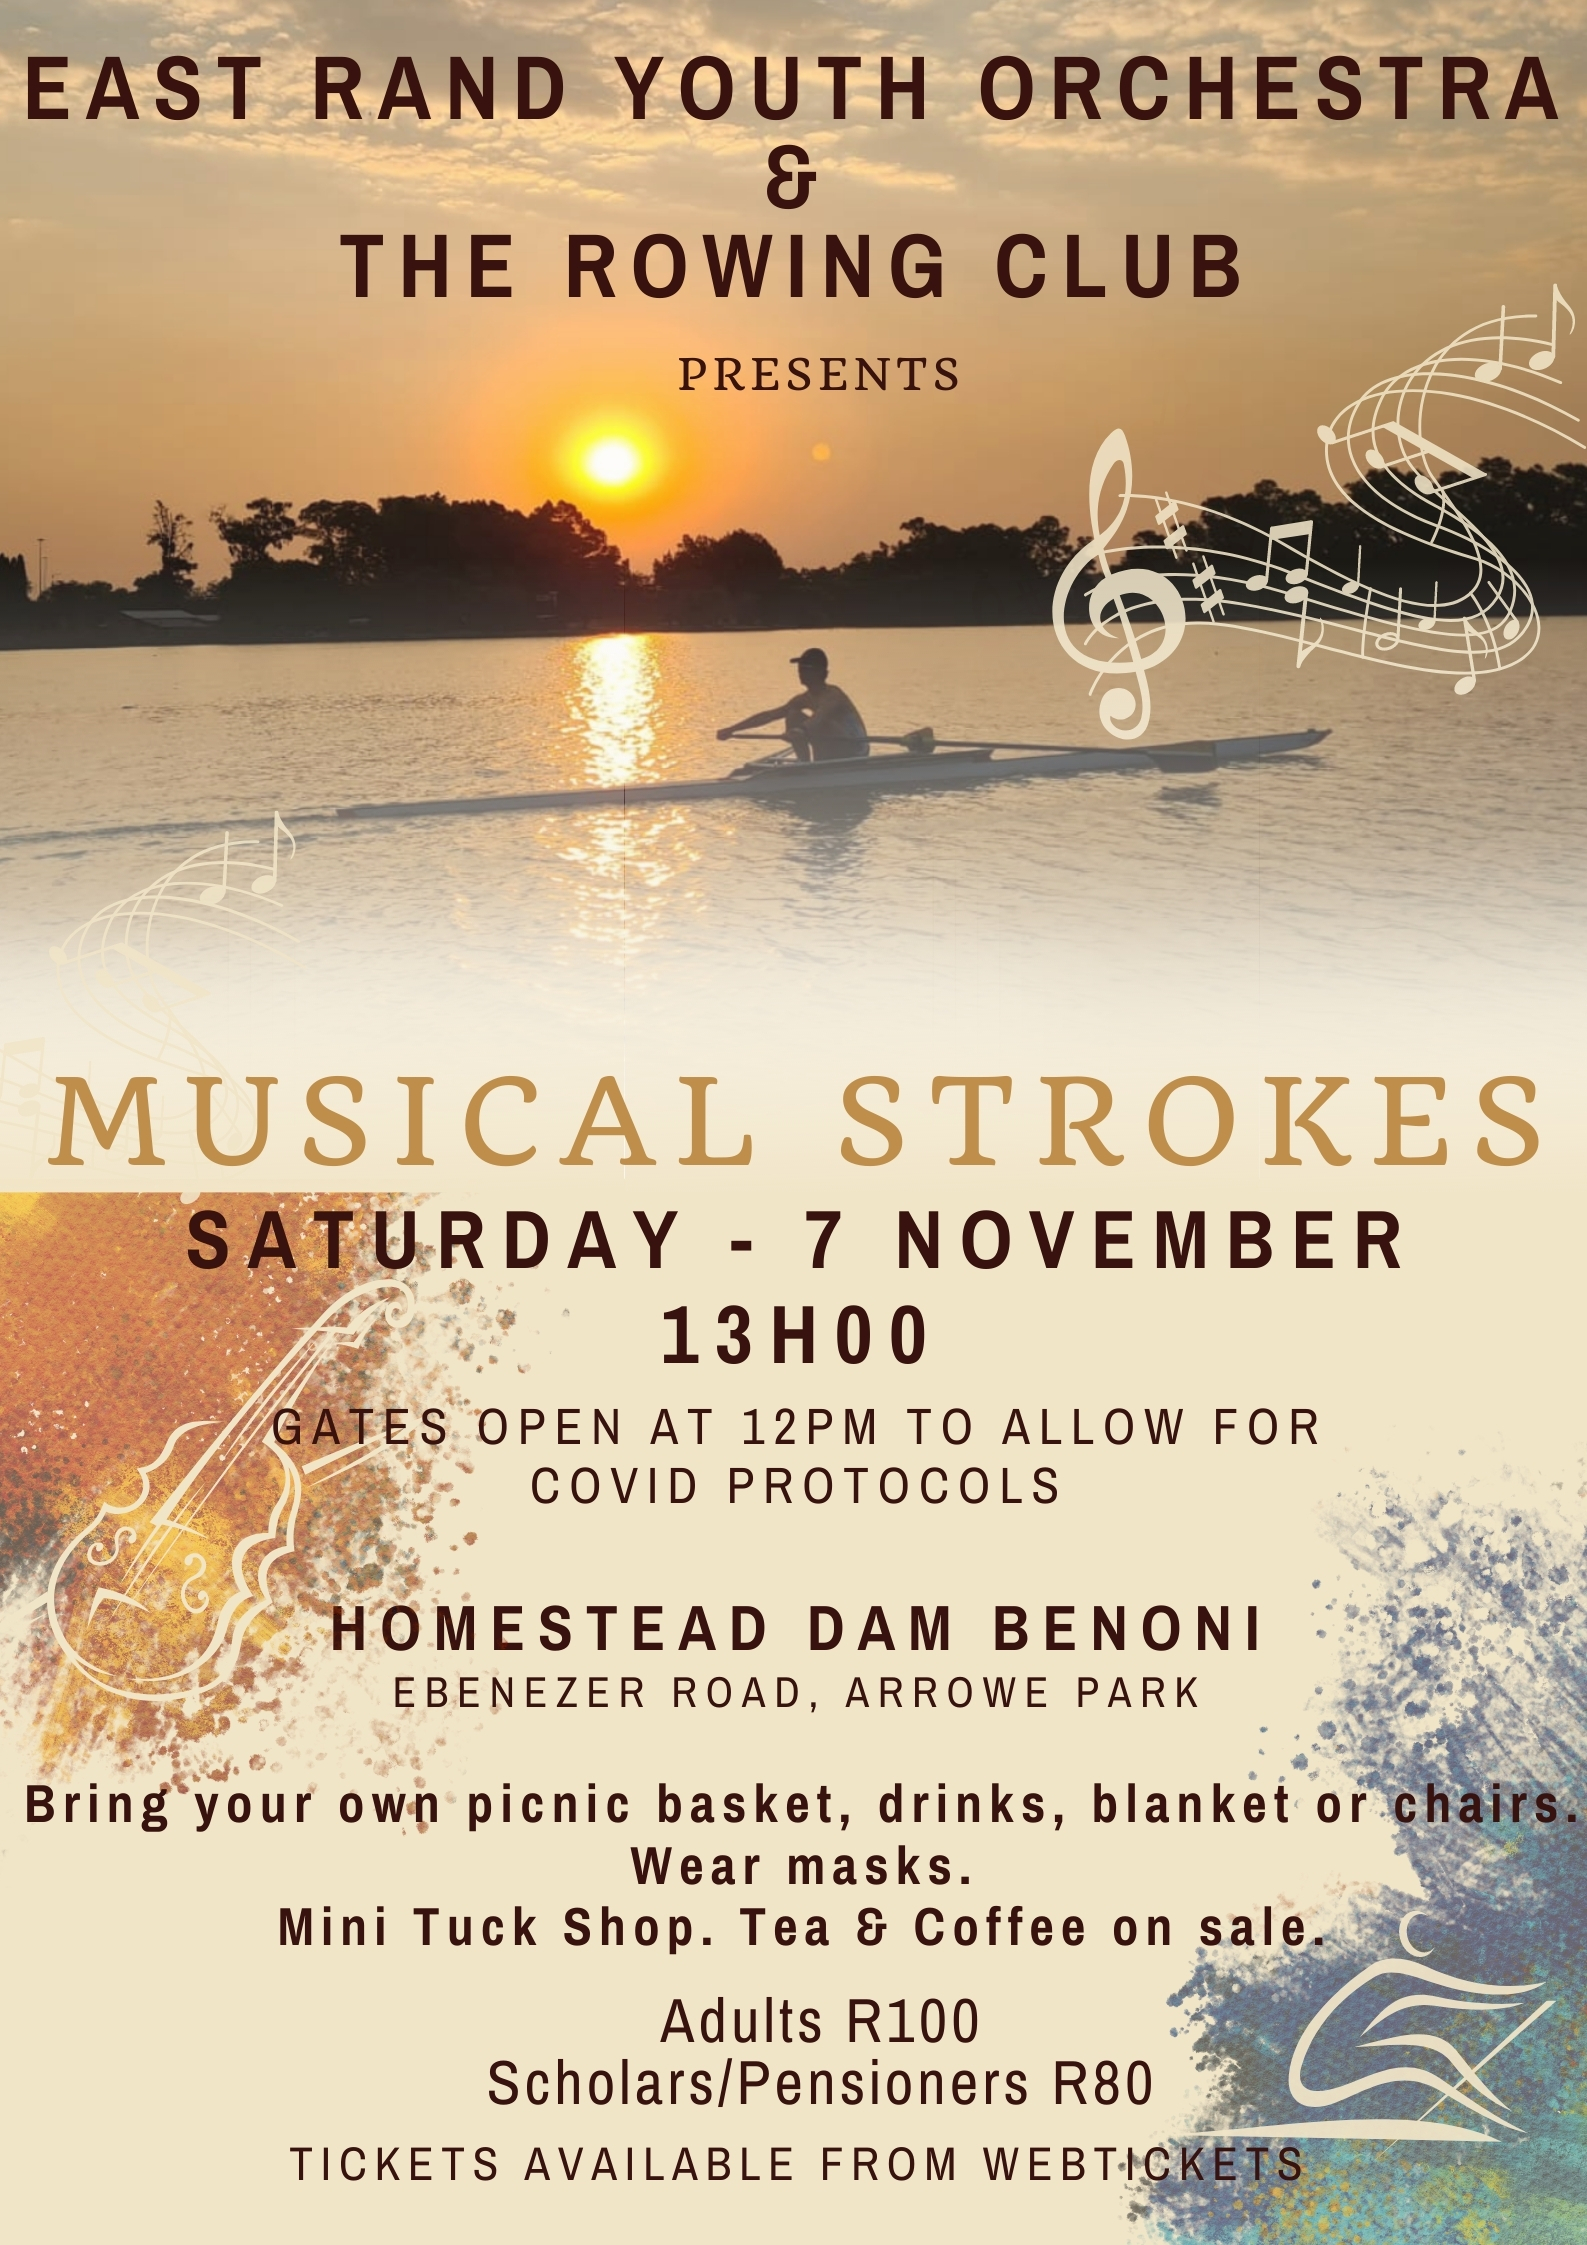 East Rand Youth Orchestra Musical Strokes Concert Poster at Benoni Rowing Club